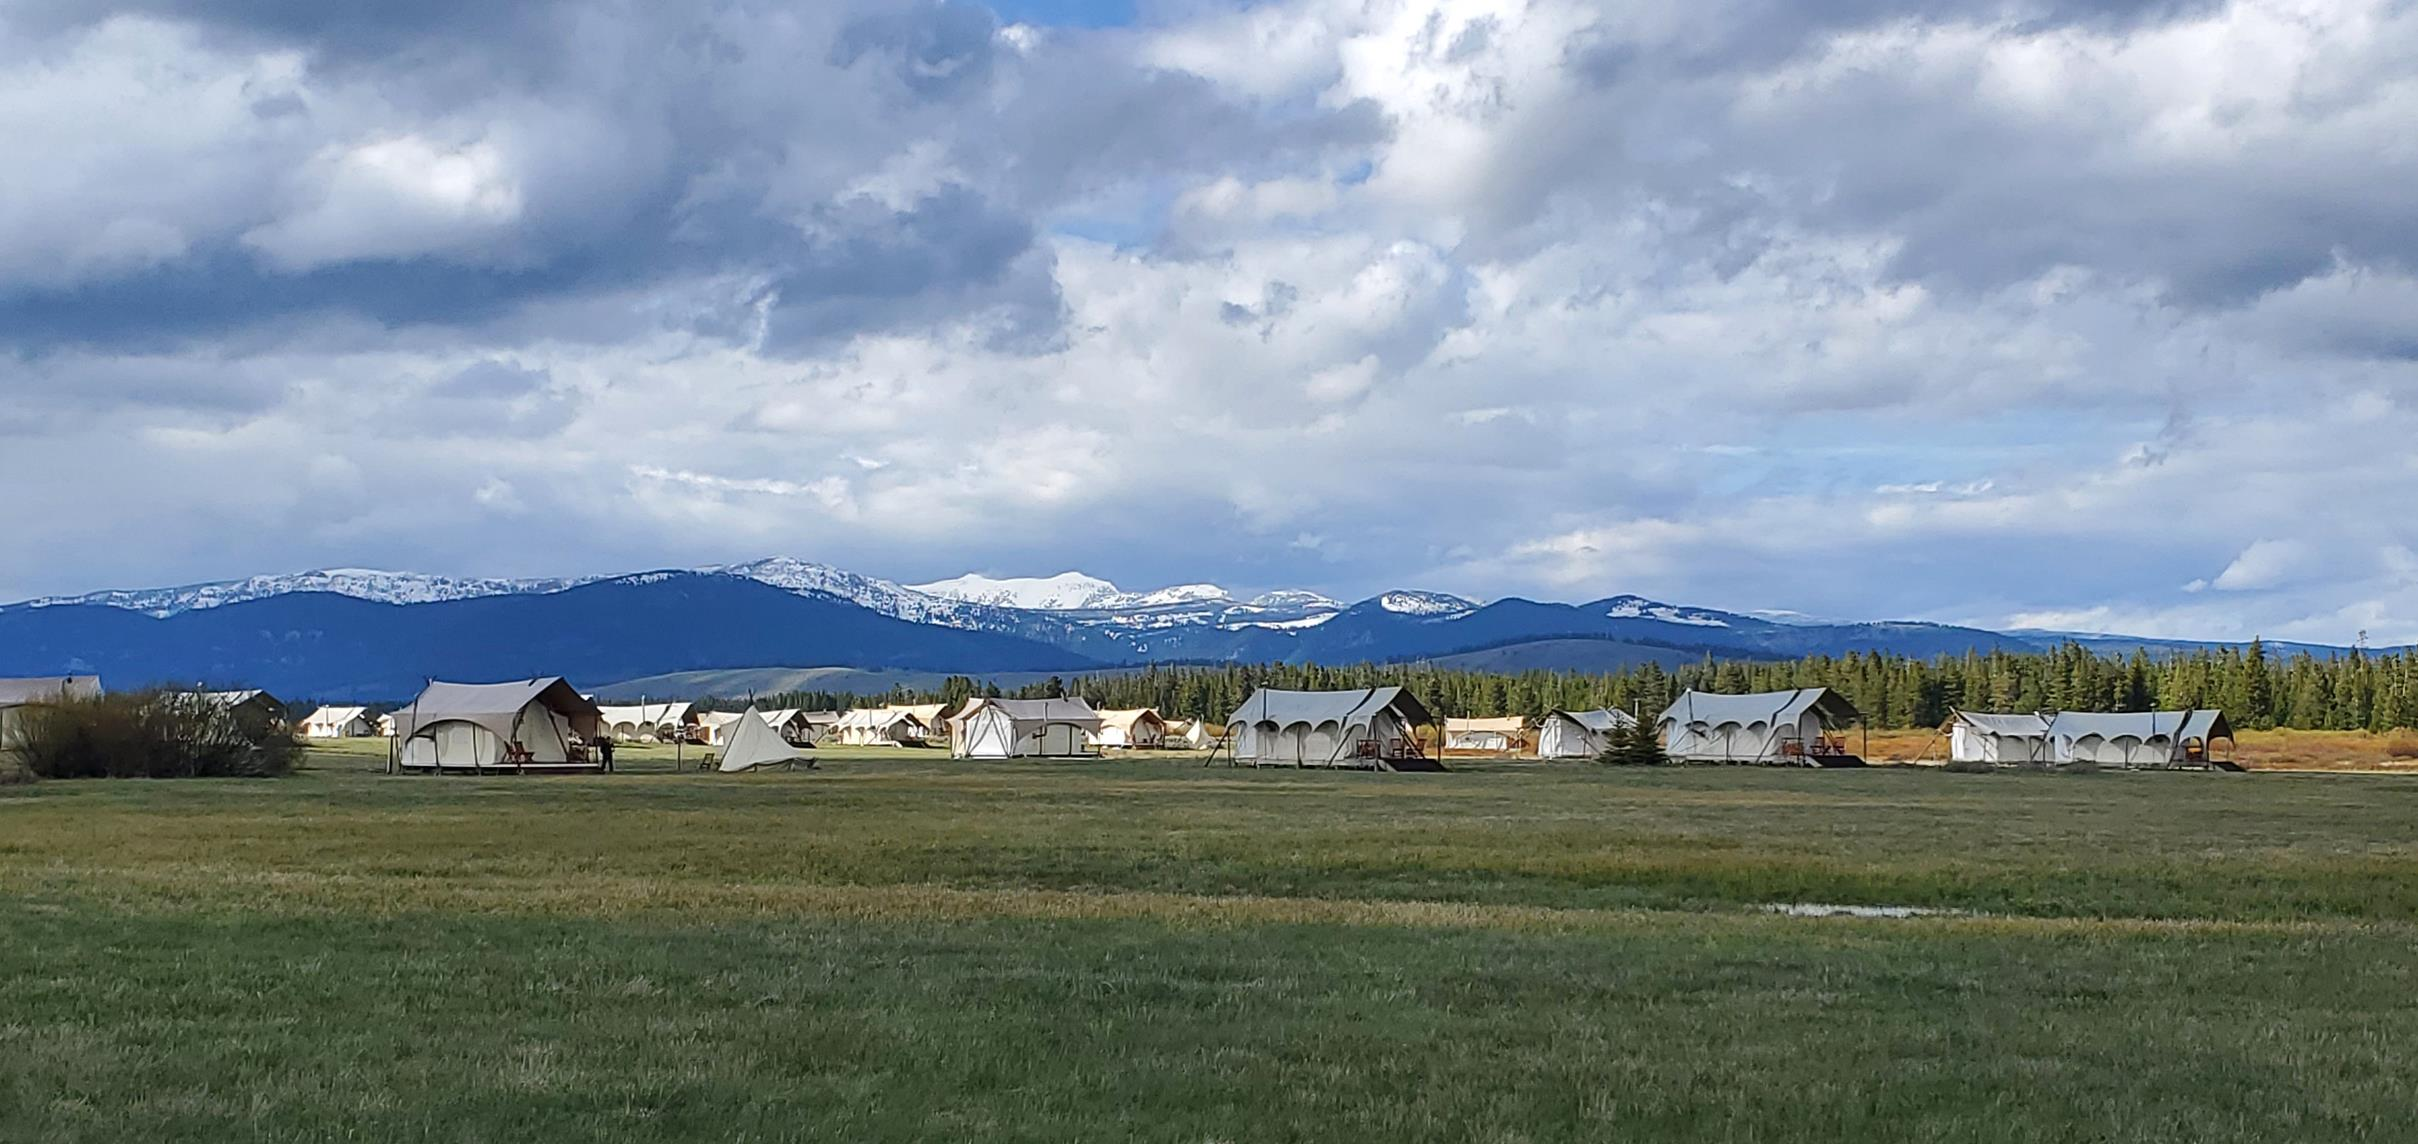 stunning snow-capped mountains set behind a Glamping campsitein Wyoming